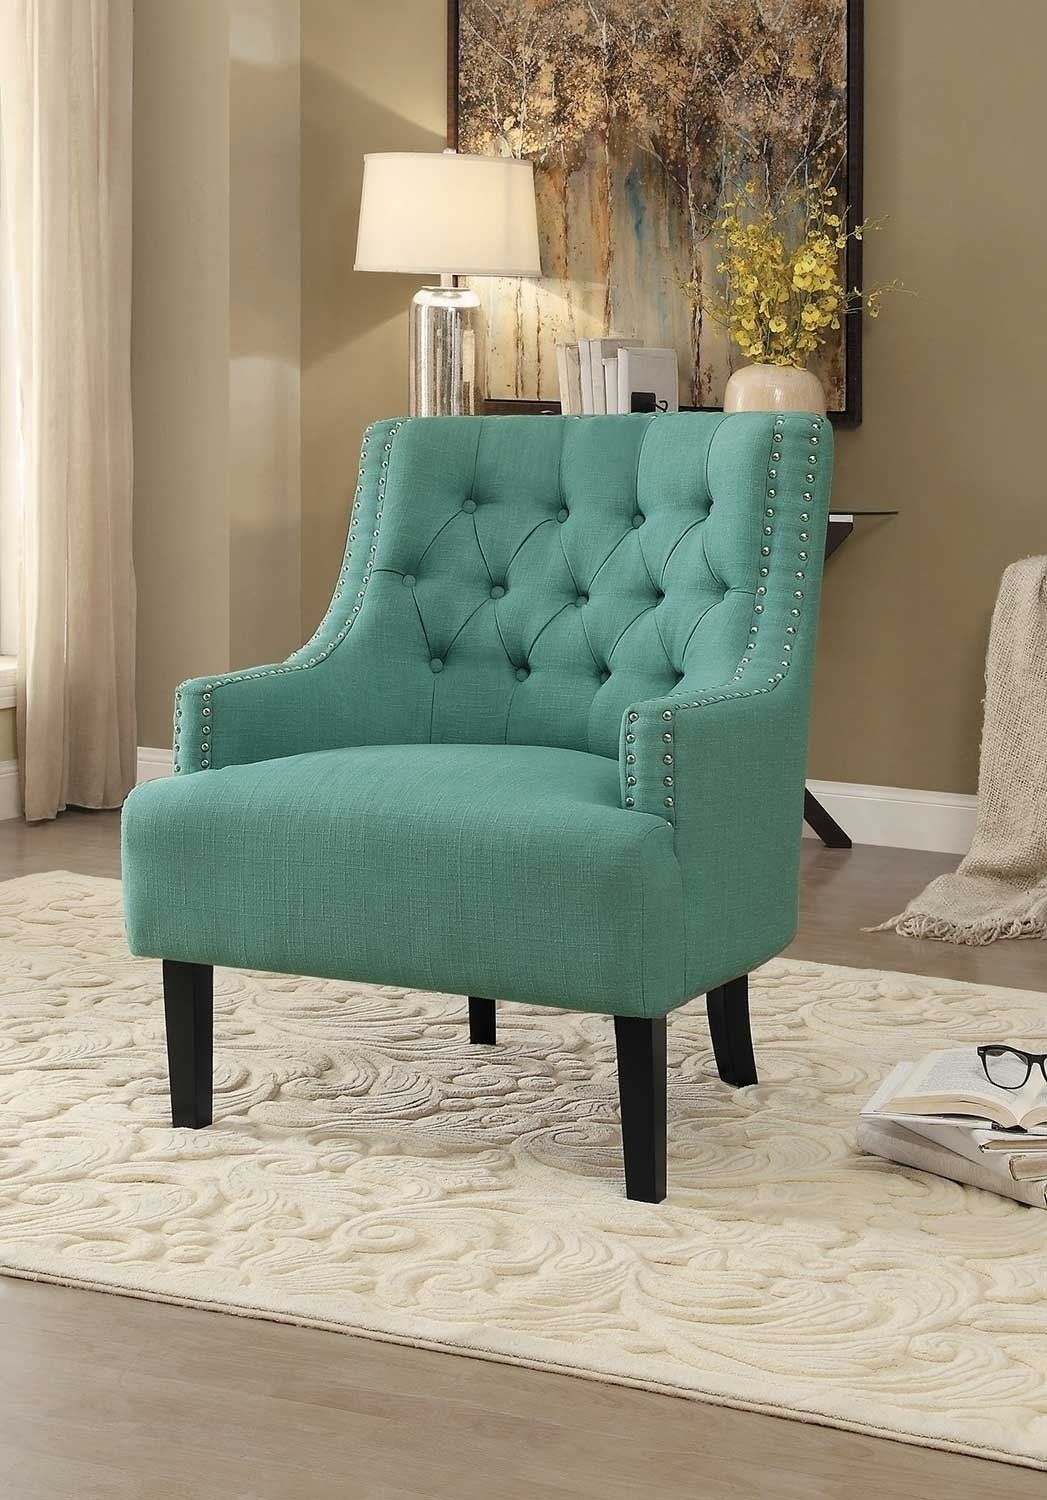 Clearance Savings Flannigan Accent Chair Is Discounted While